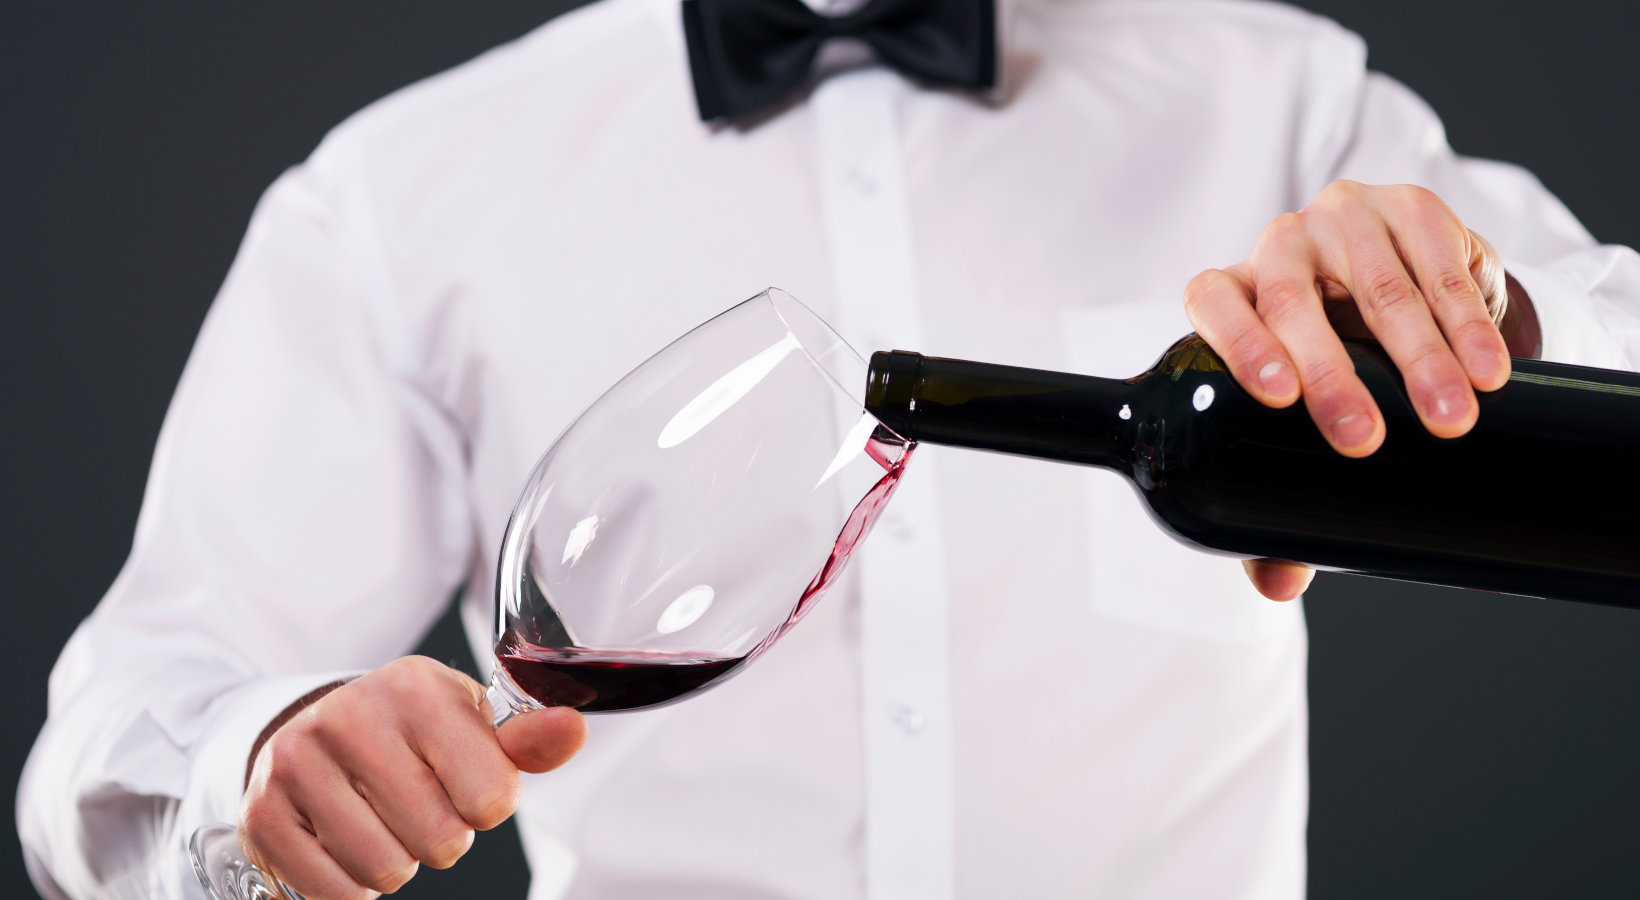 How to pour wine